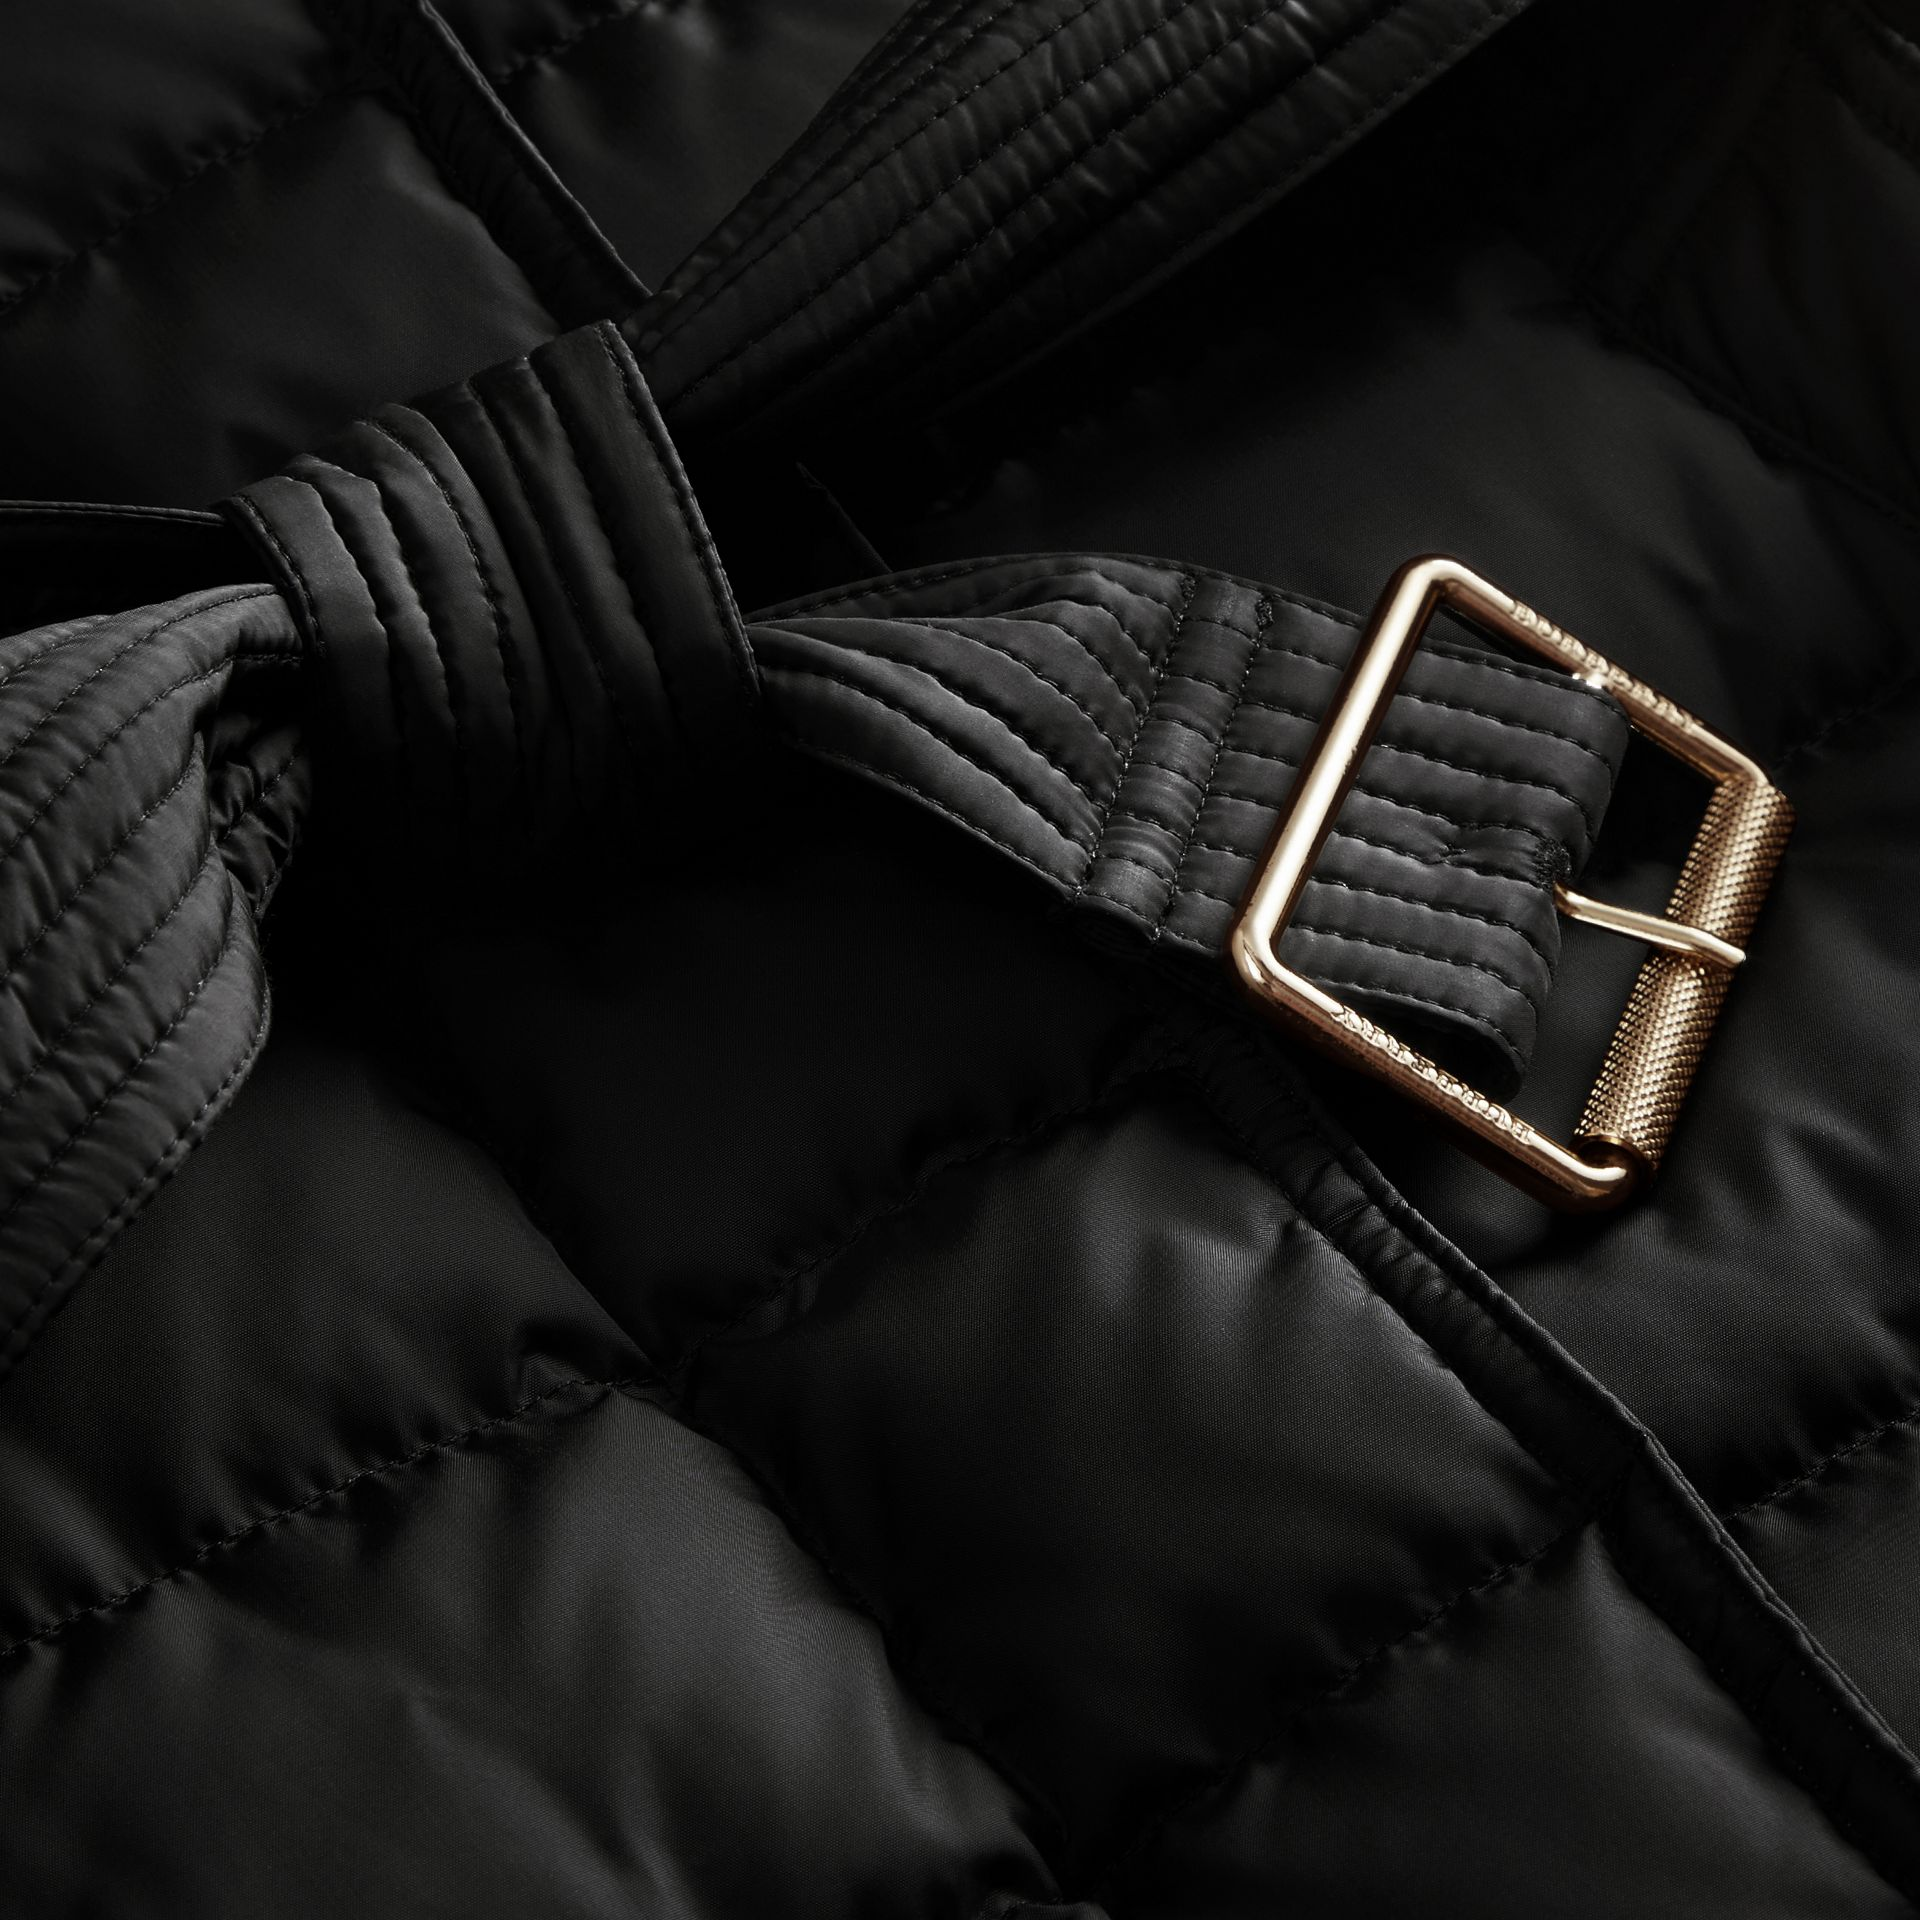 Down-filled Puffer Jacket with Packaway Hood in Black - Women | Burberry - gallery image 2